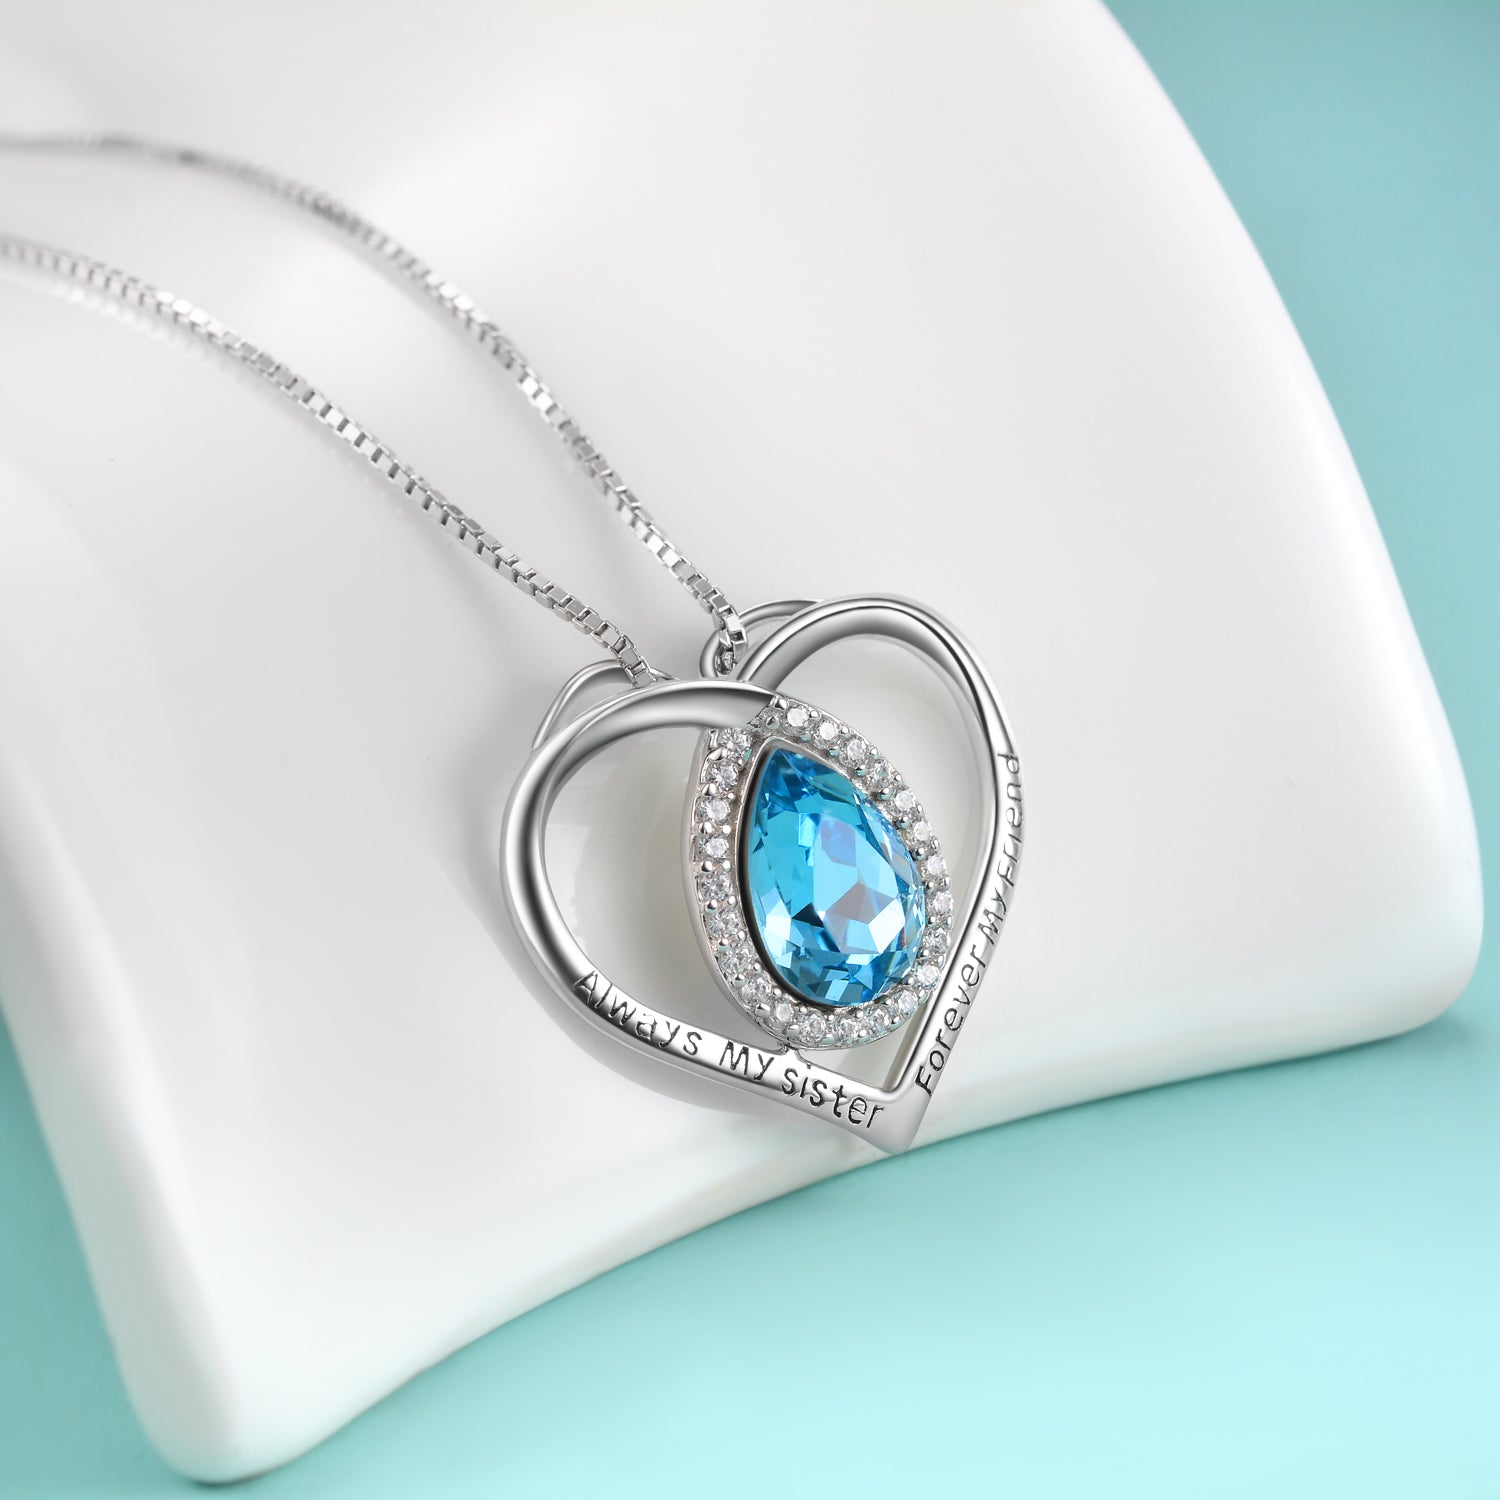 2019 New Design Women Fashion Necklaces & Pendants Custom Heart Necklace Jewelry